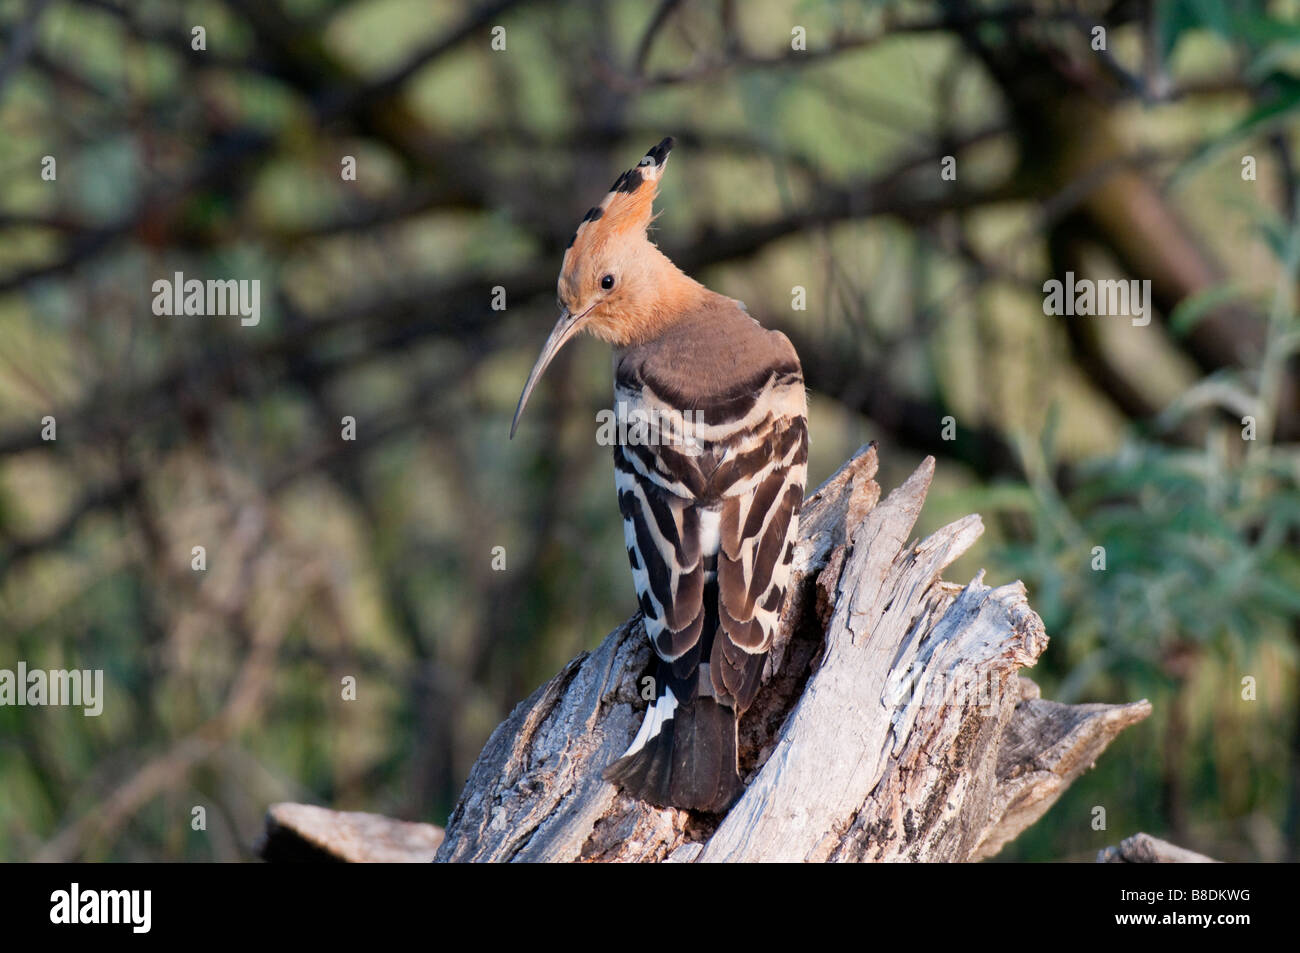 Wiedehopf (Upupa epops) - Hoopoe Stock Photo